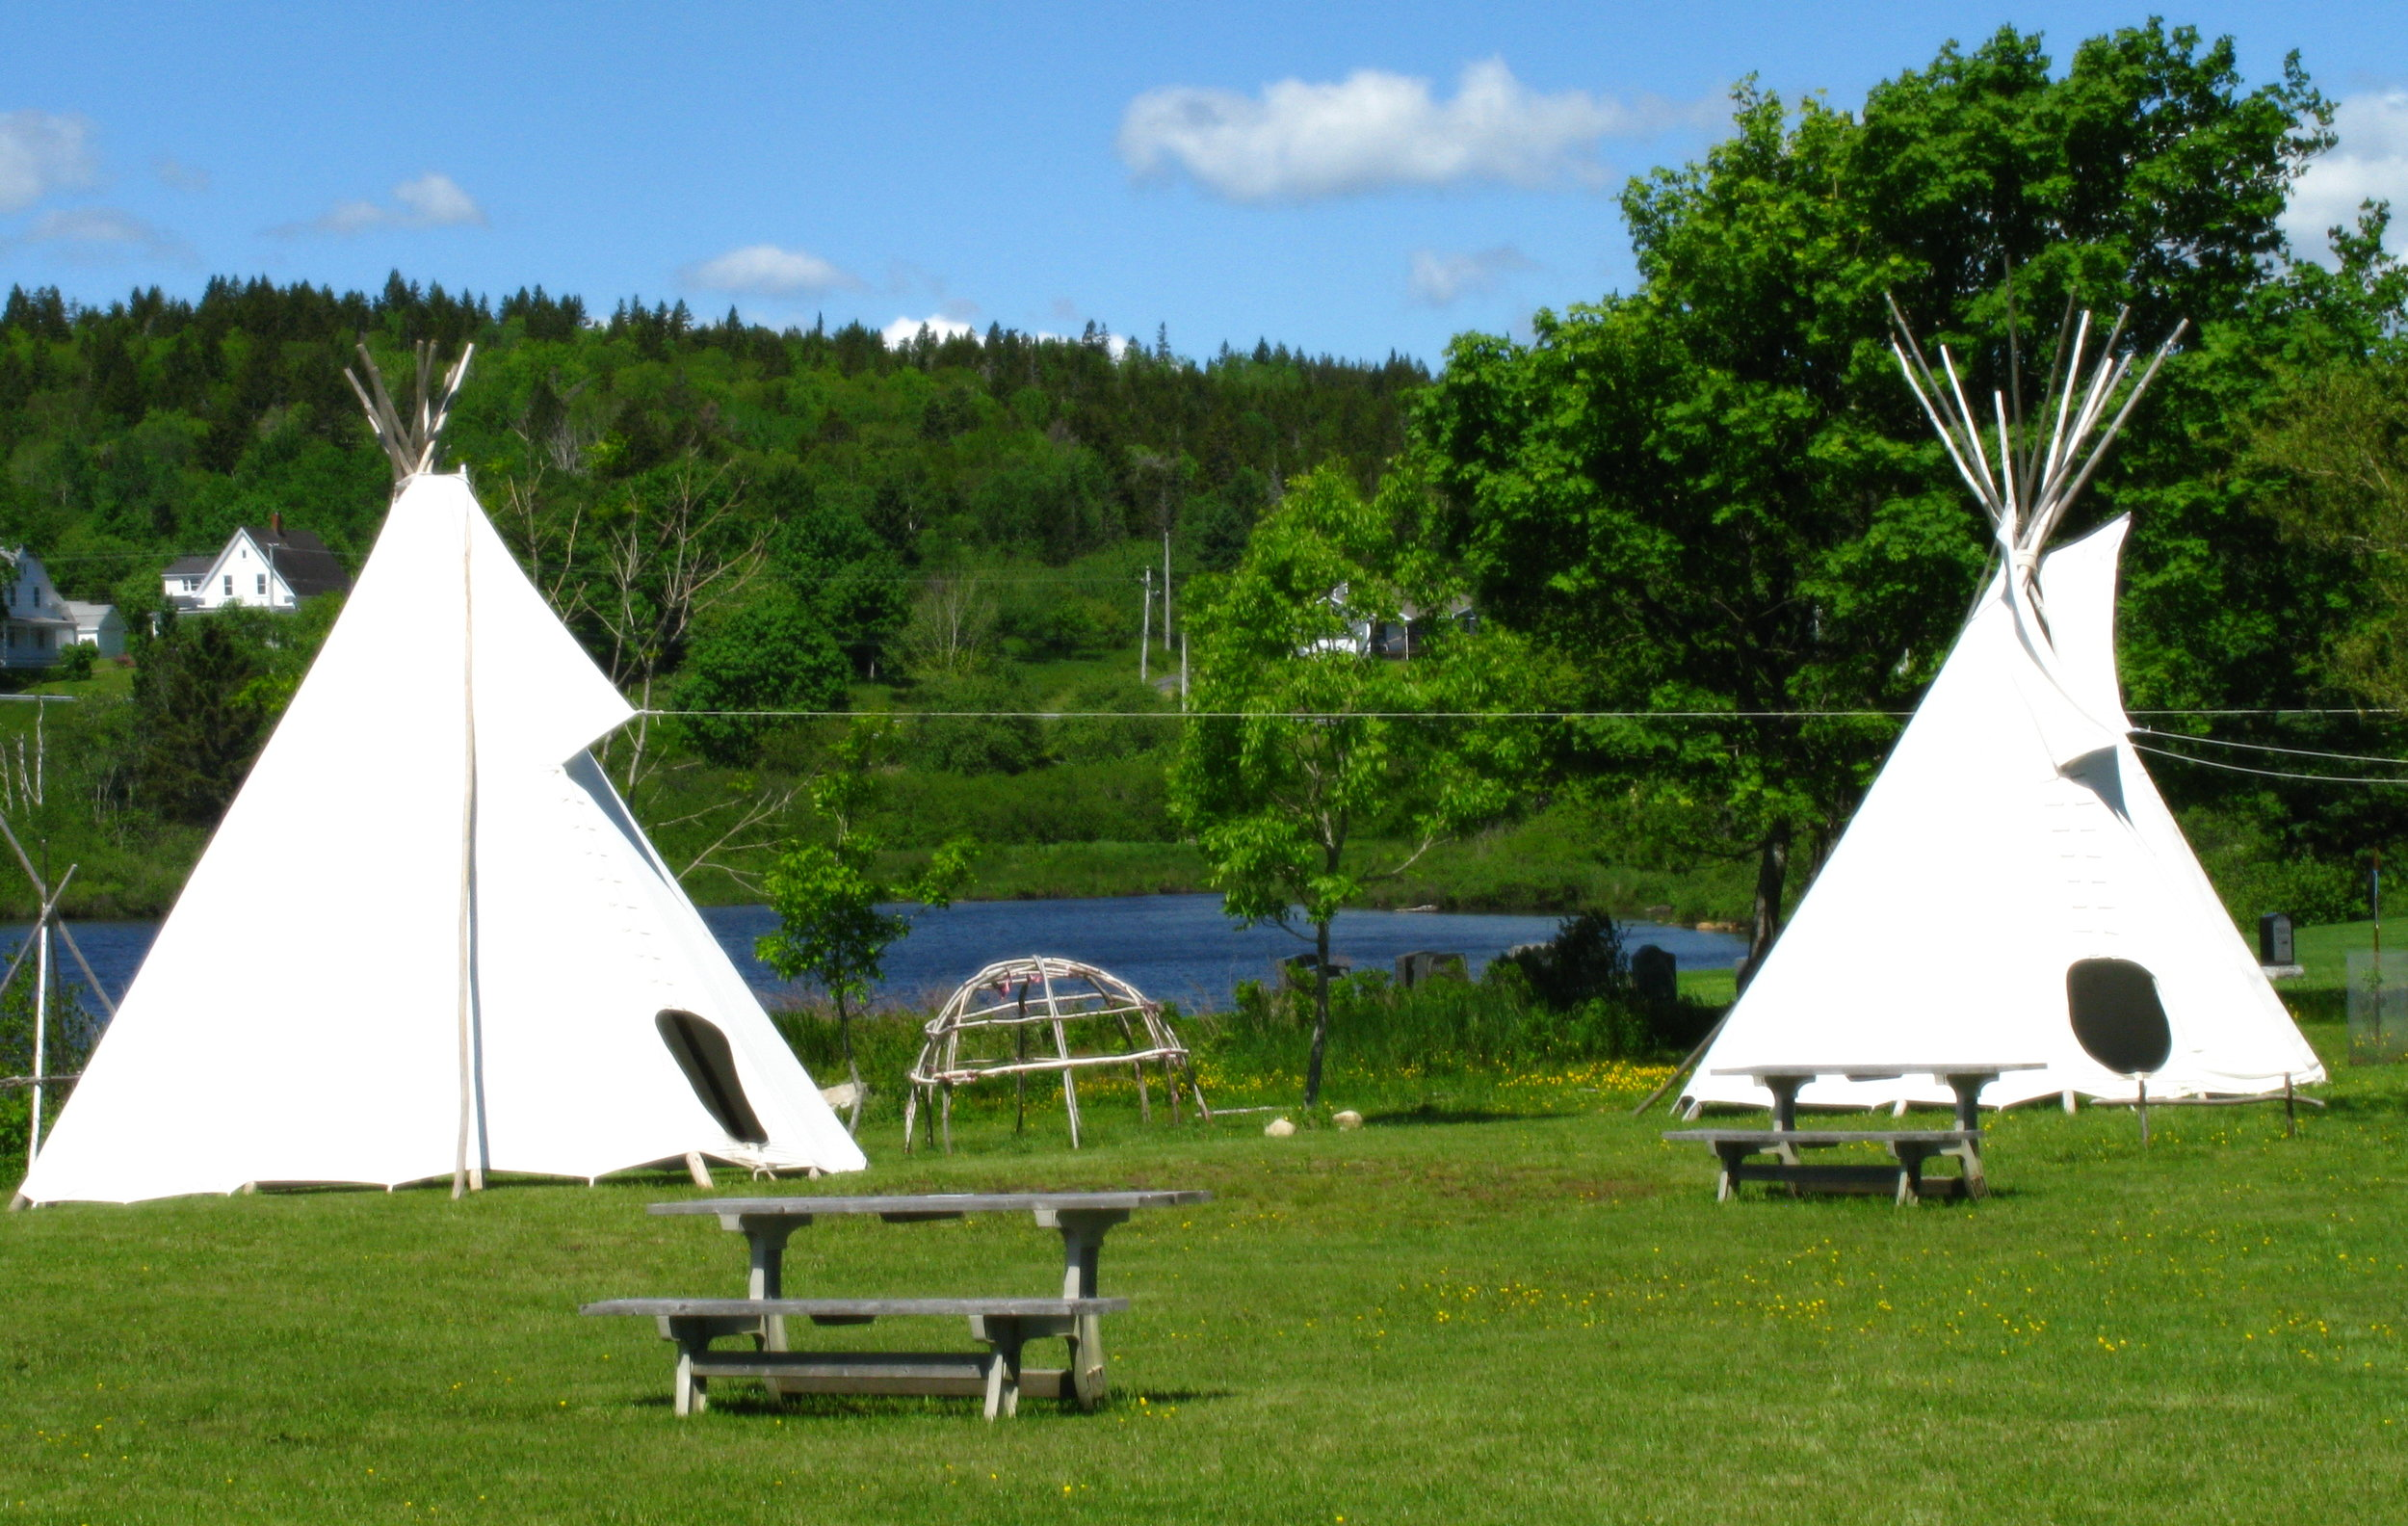 The museum grounds celebrate Mi'kmaq heritage with a small interpretive village including a teepee, communal fire setting, and native plant medicine knowledge. Local Mi'kmaq community members often sell and showcase many of their traditional crafts at our heritage events.